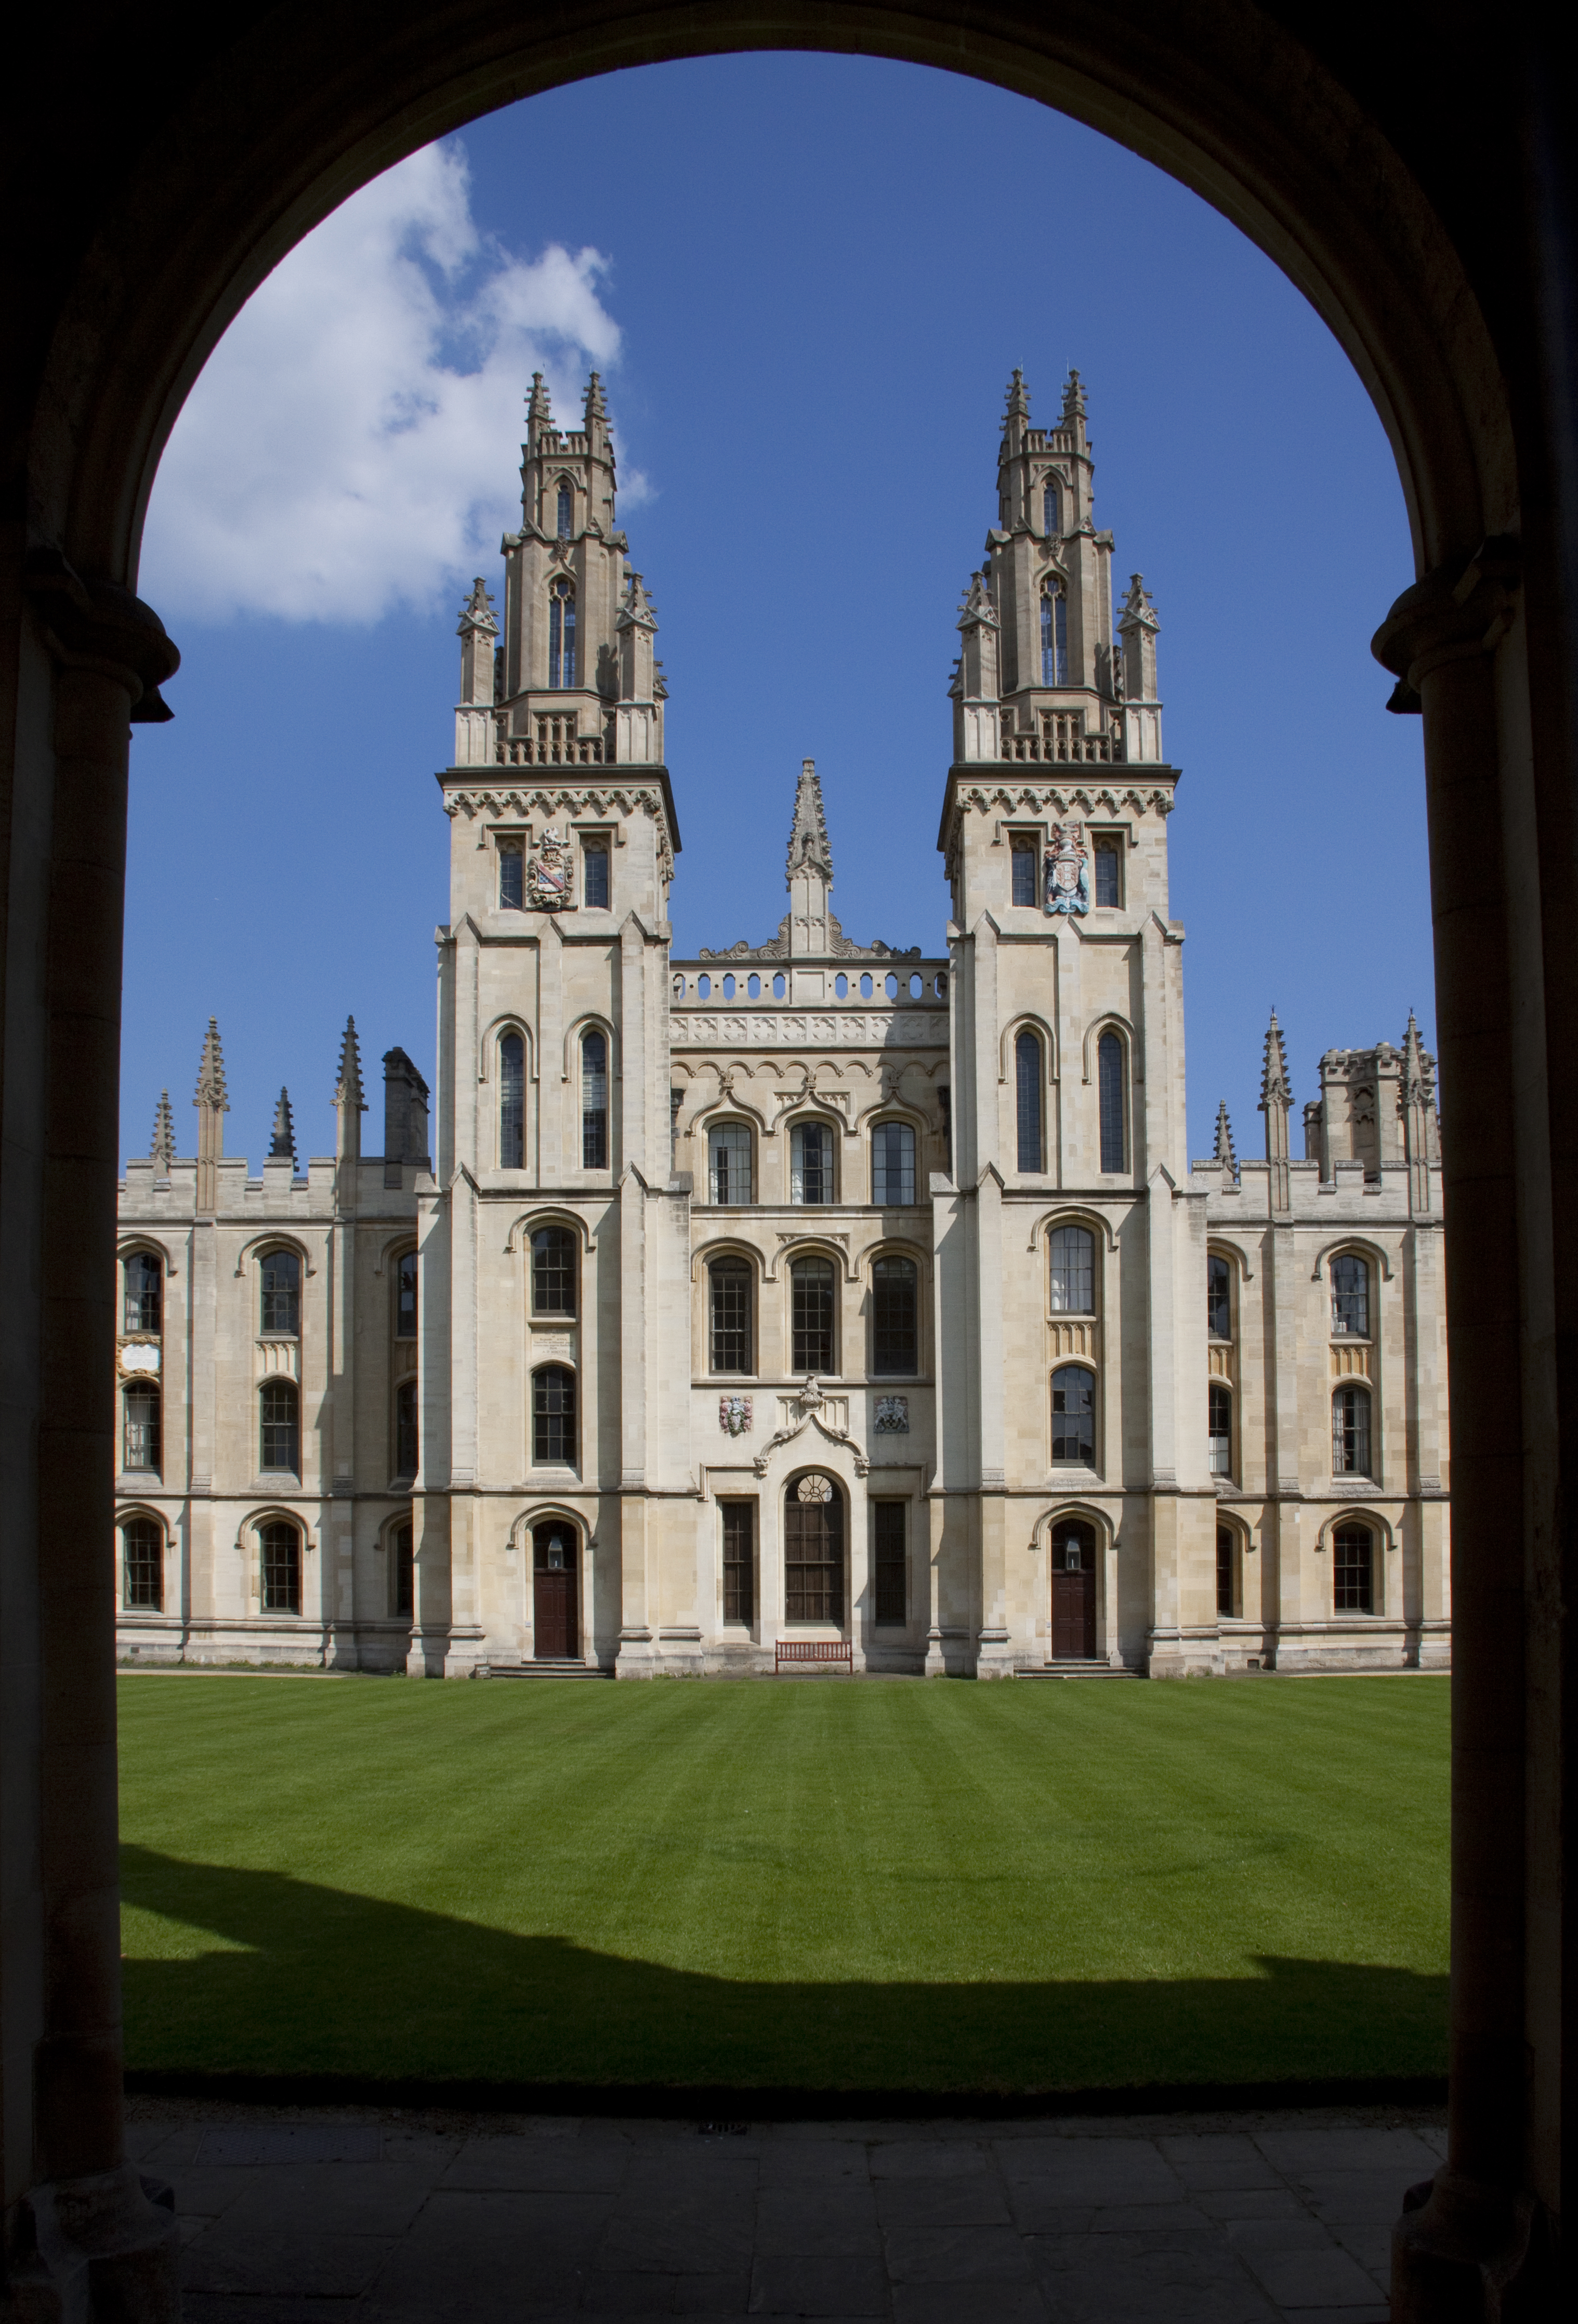 http://upload.wikimedia.org/wikipedia/commons/d/da/All_Souls_College_Oxford_(5647145915).jpg